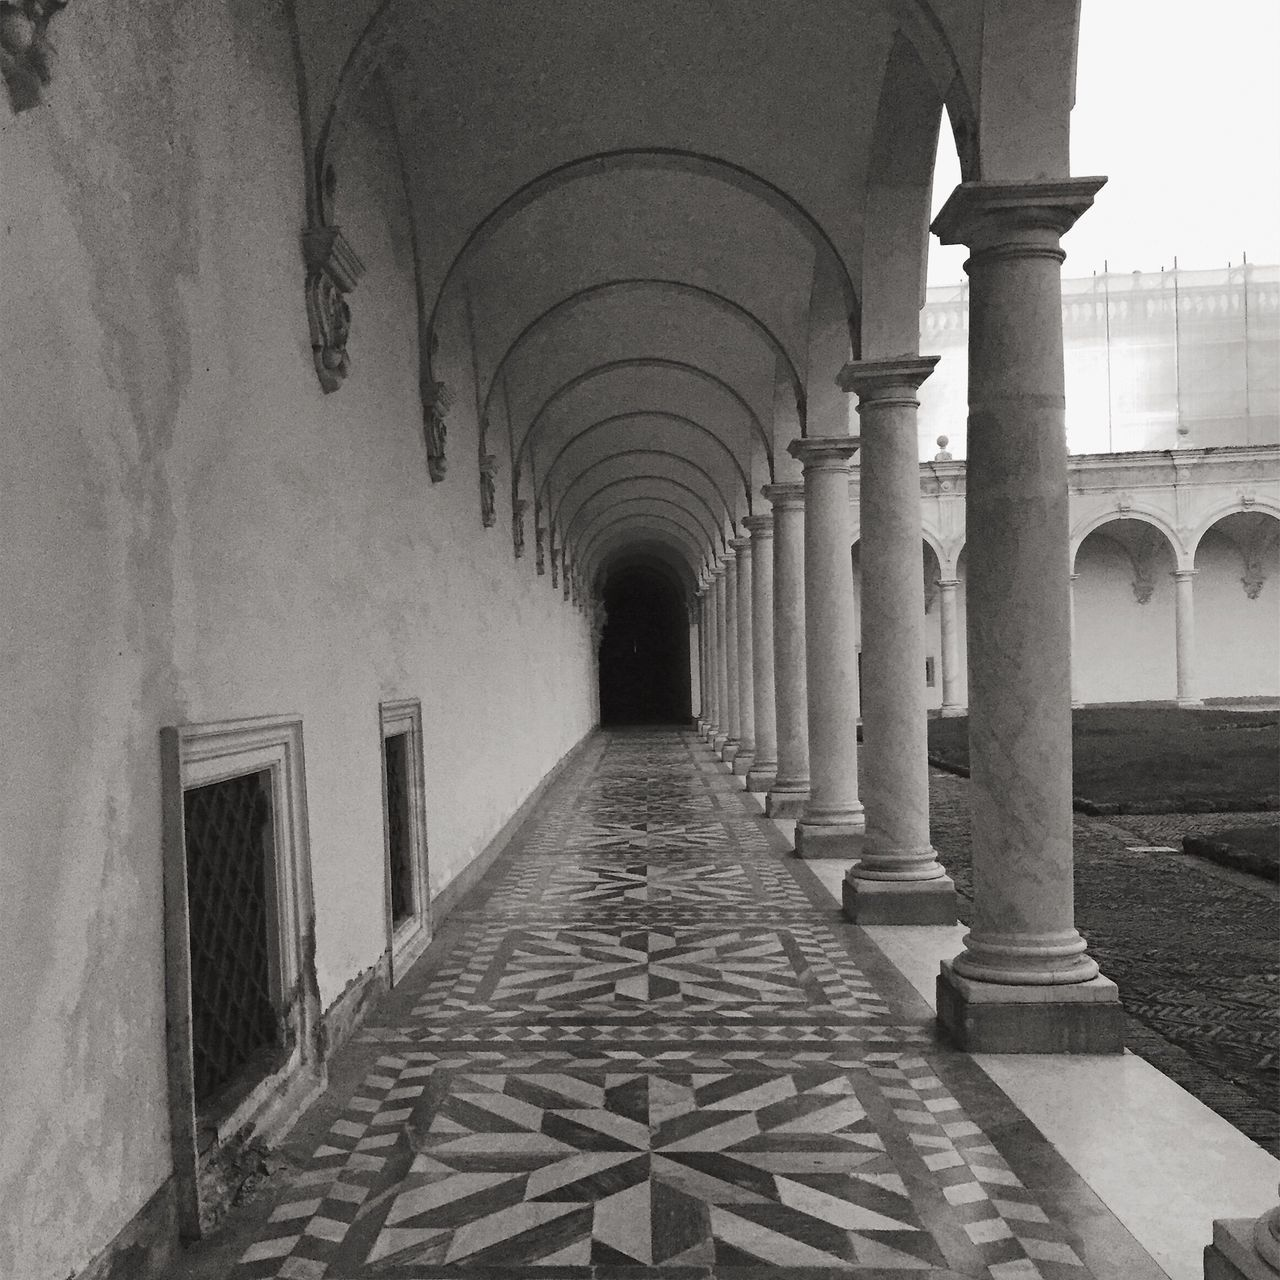 architecture, architectural column, arch, corridor, built structure, history, the way forward, indoors, day, no people